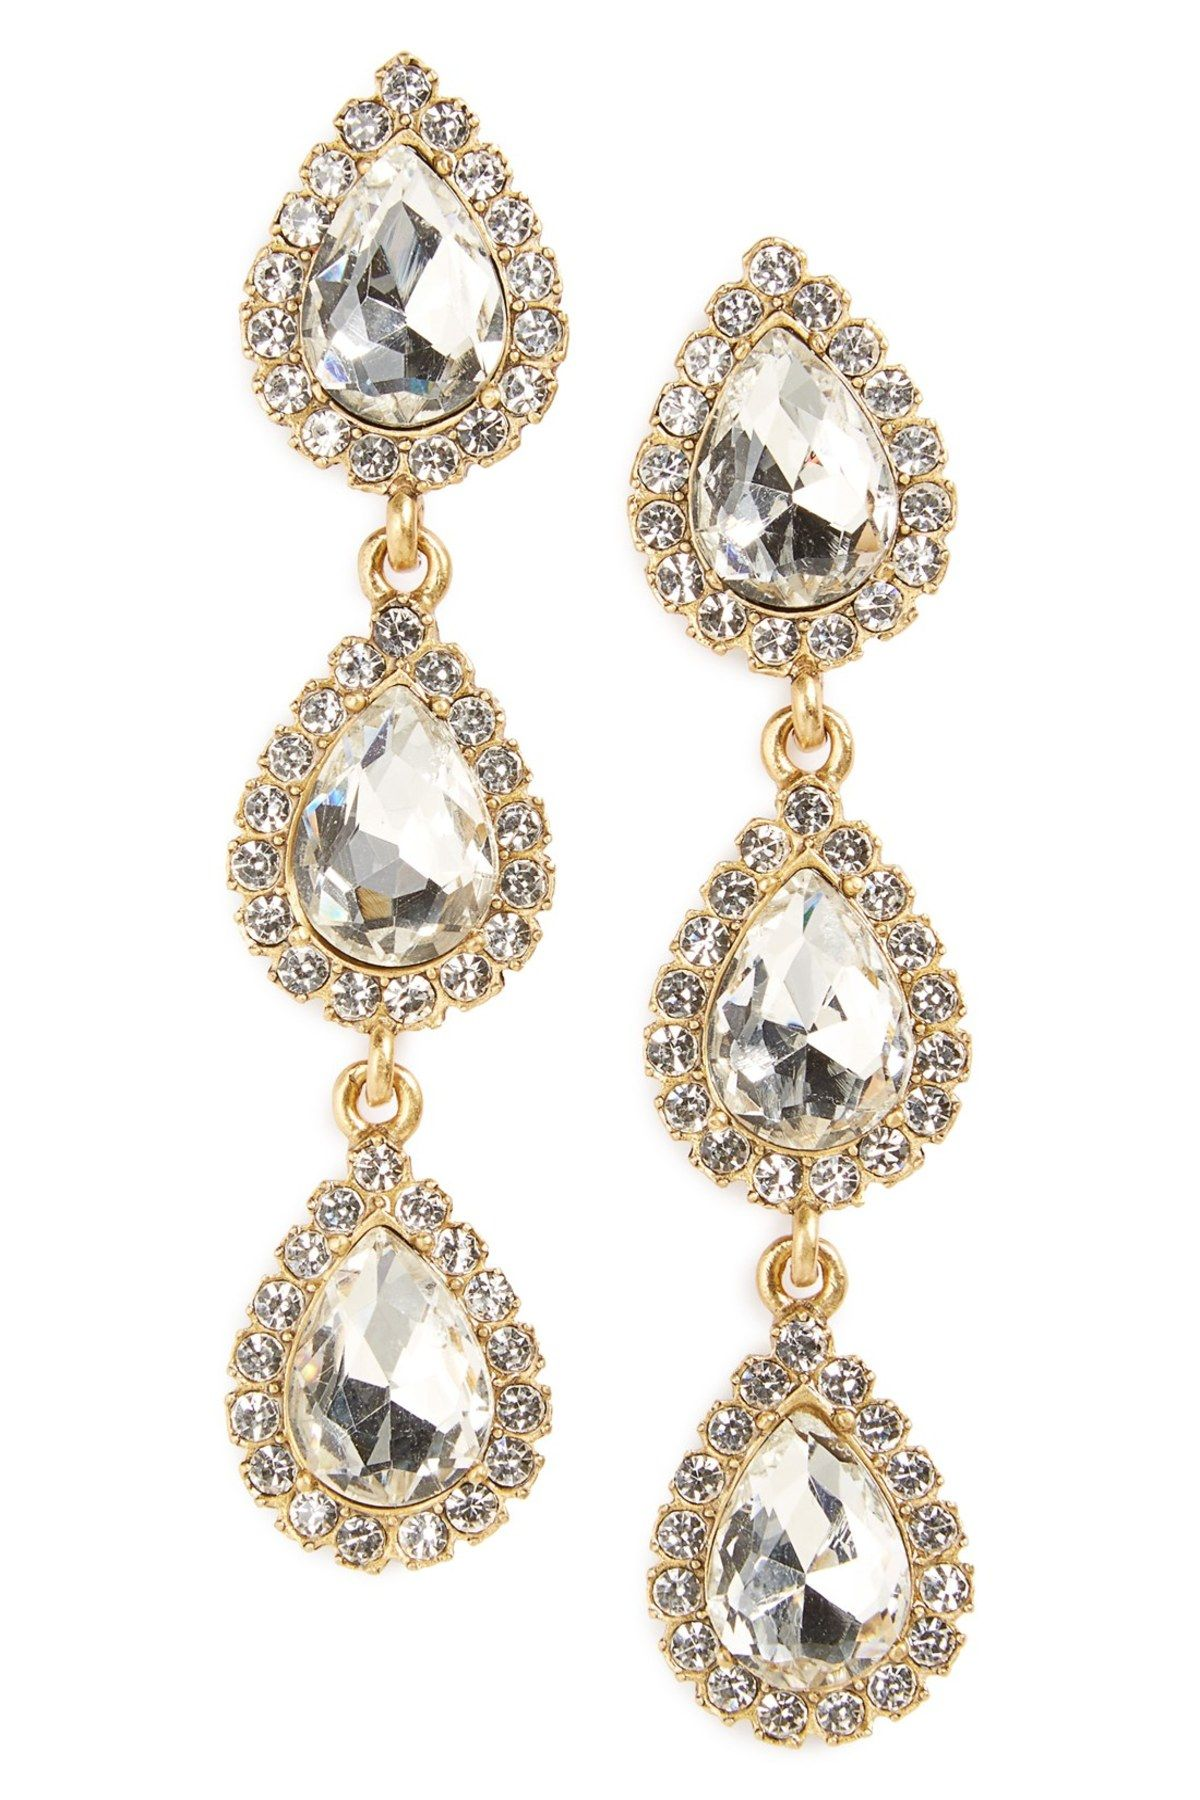 46dcf259a Loren Hope - Natalie Drop Earrings is now 70% off. Free Shipping on orders  over $100.